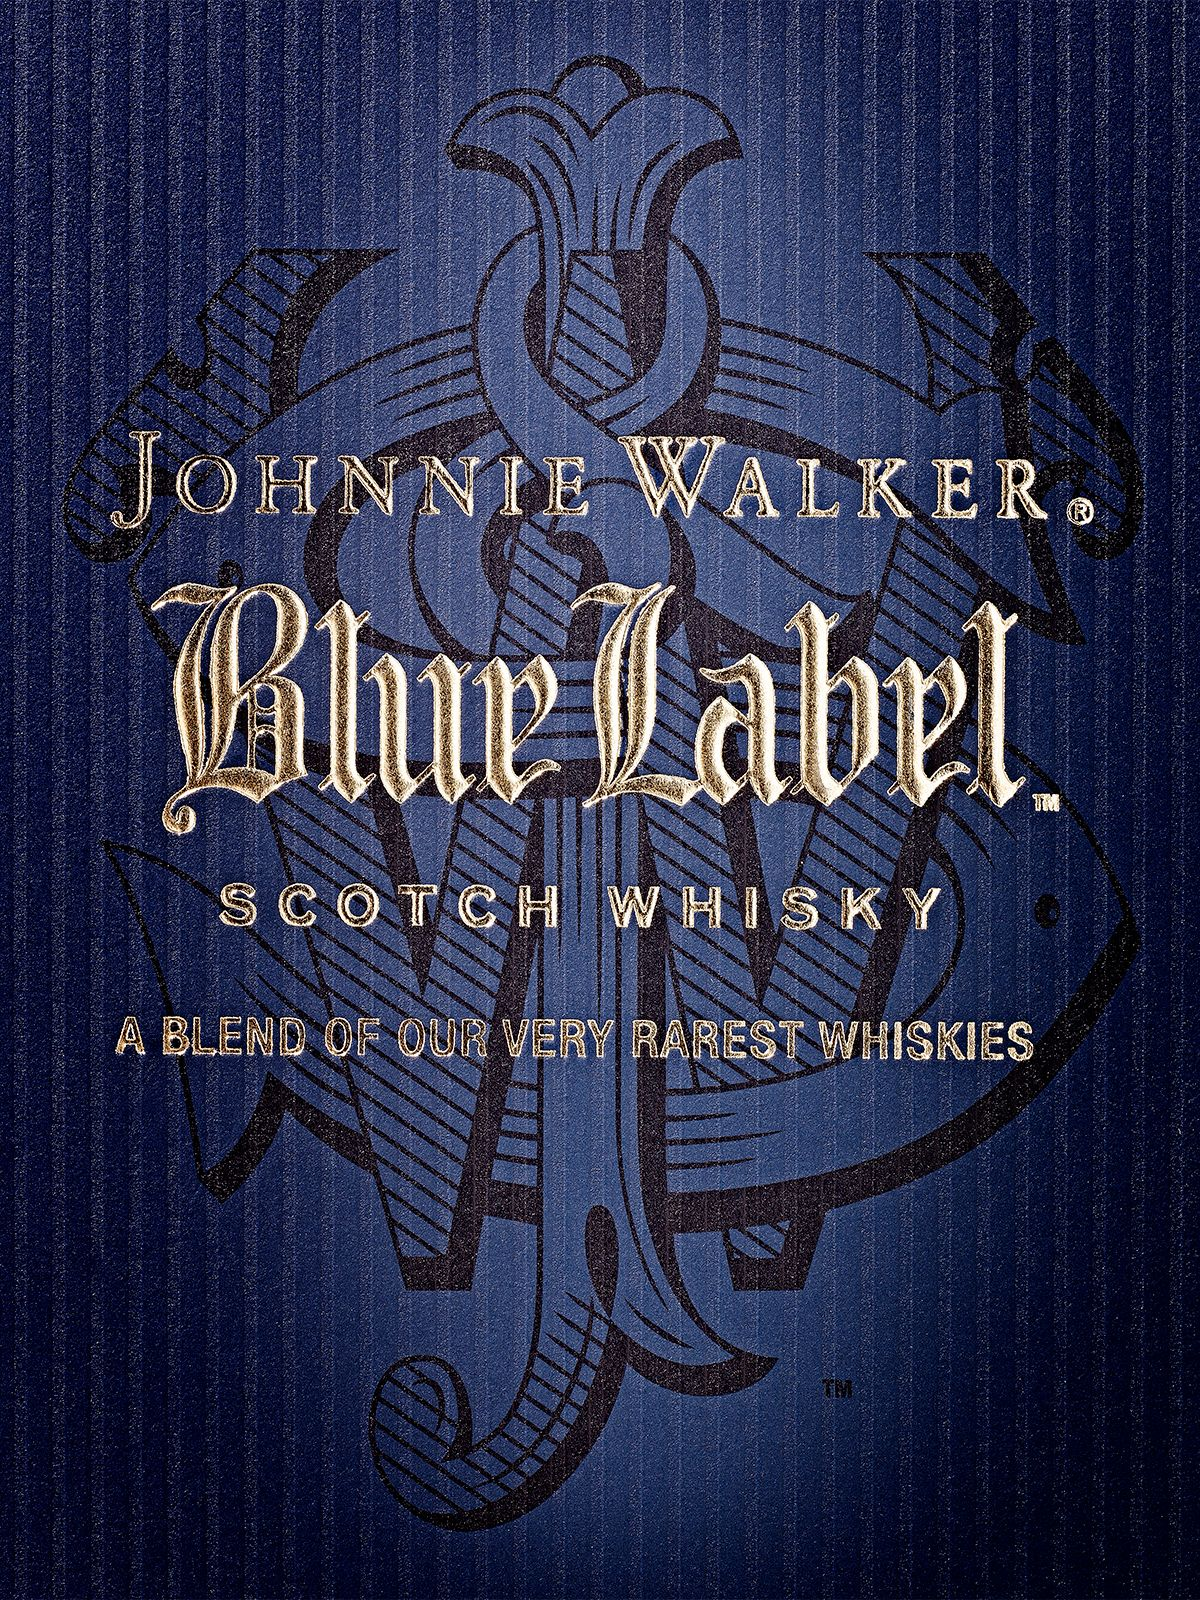 JohnnyWalker01_Workbook.jpg